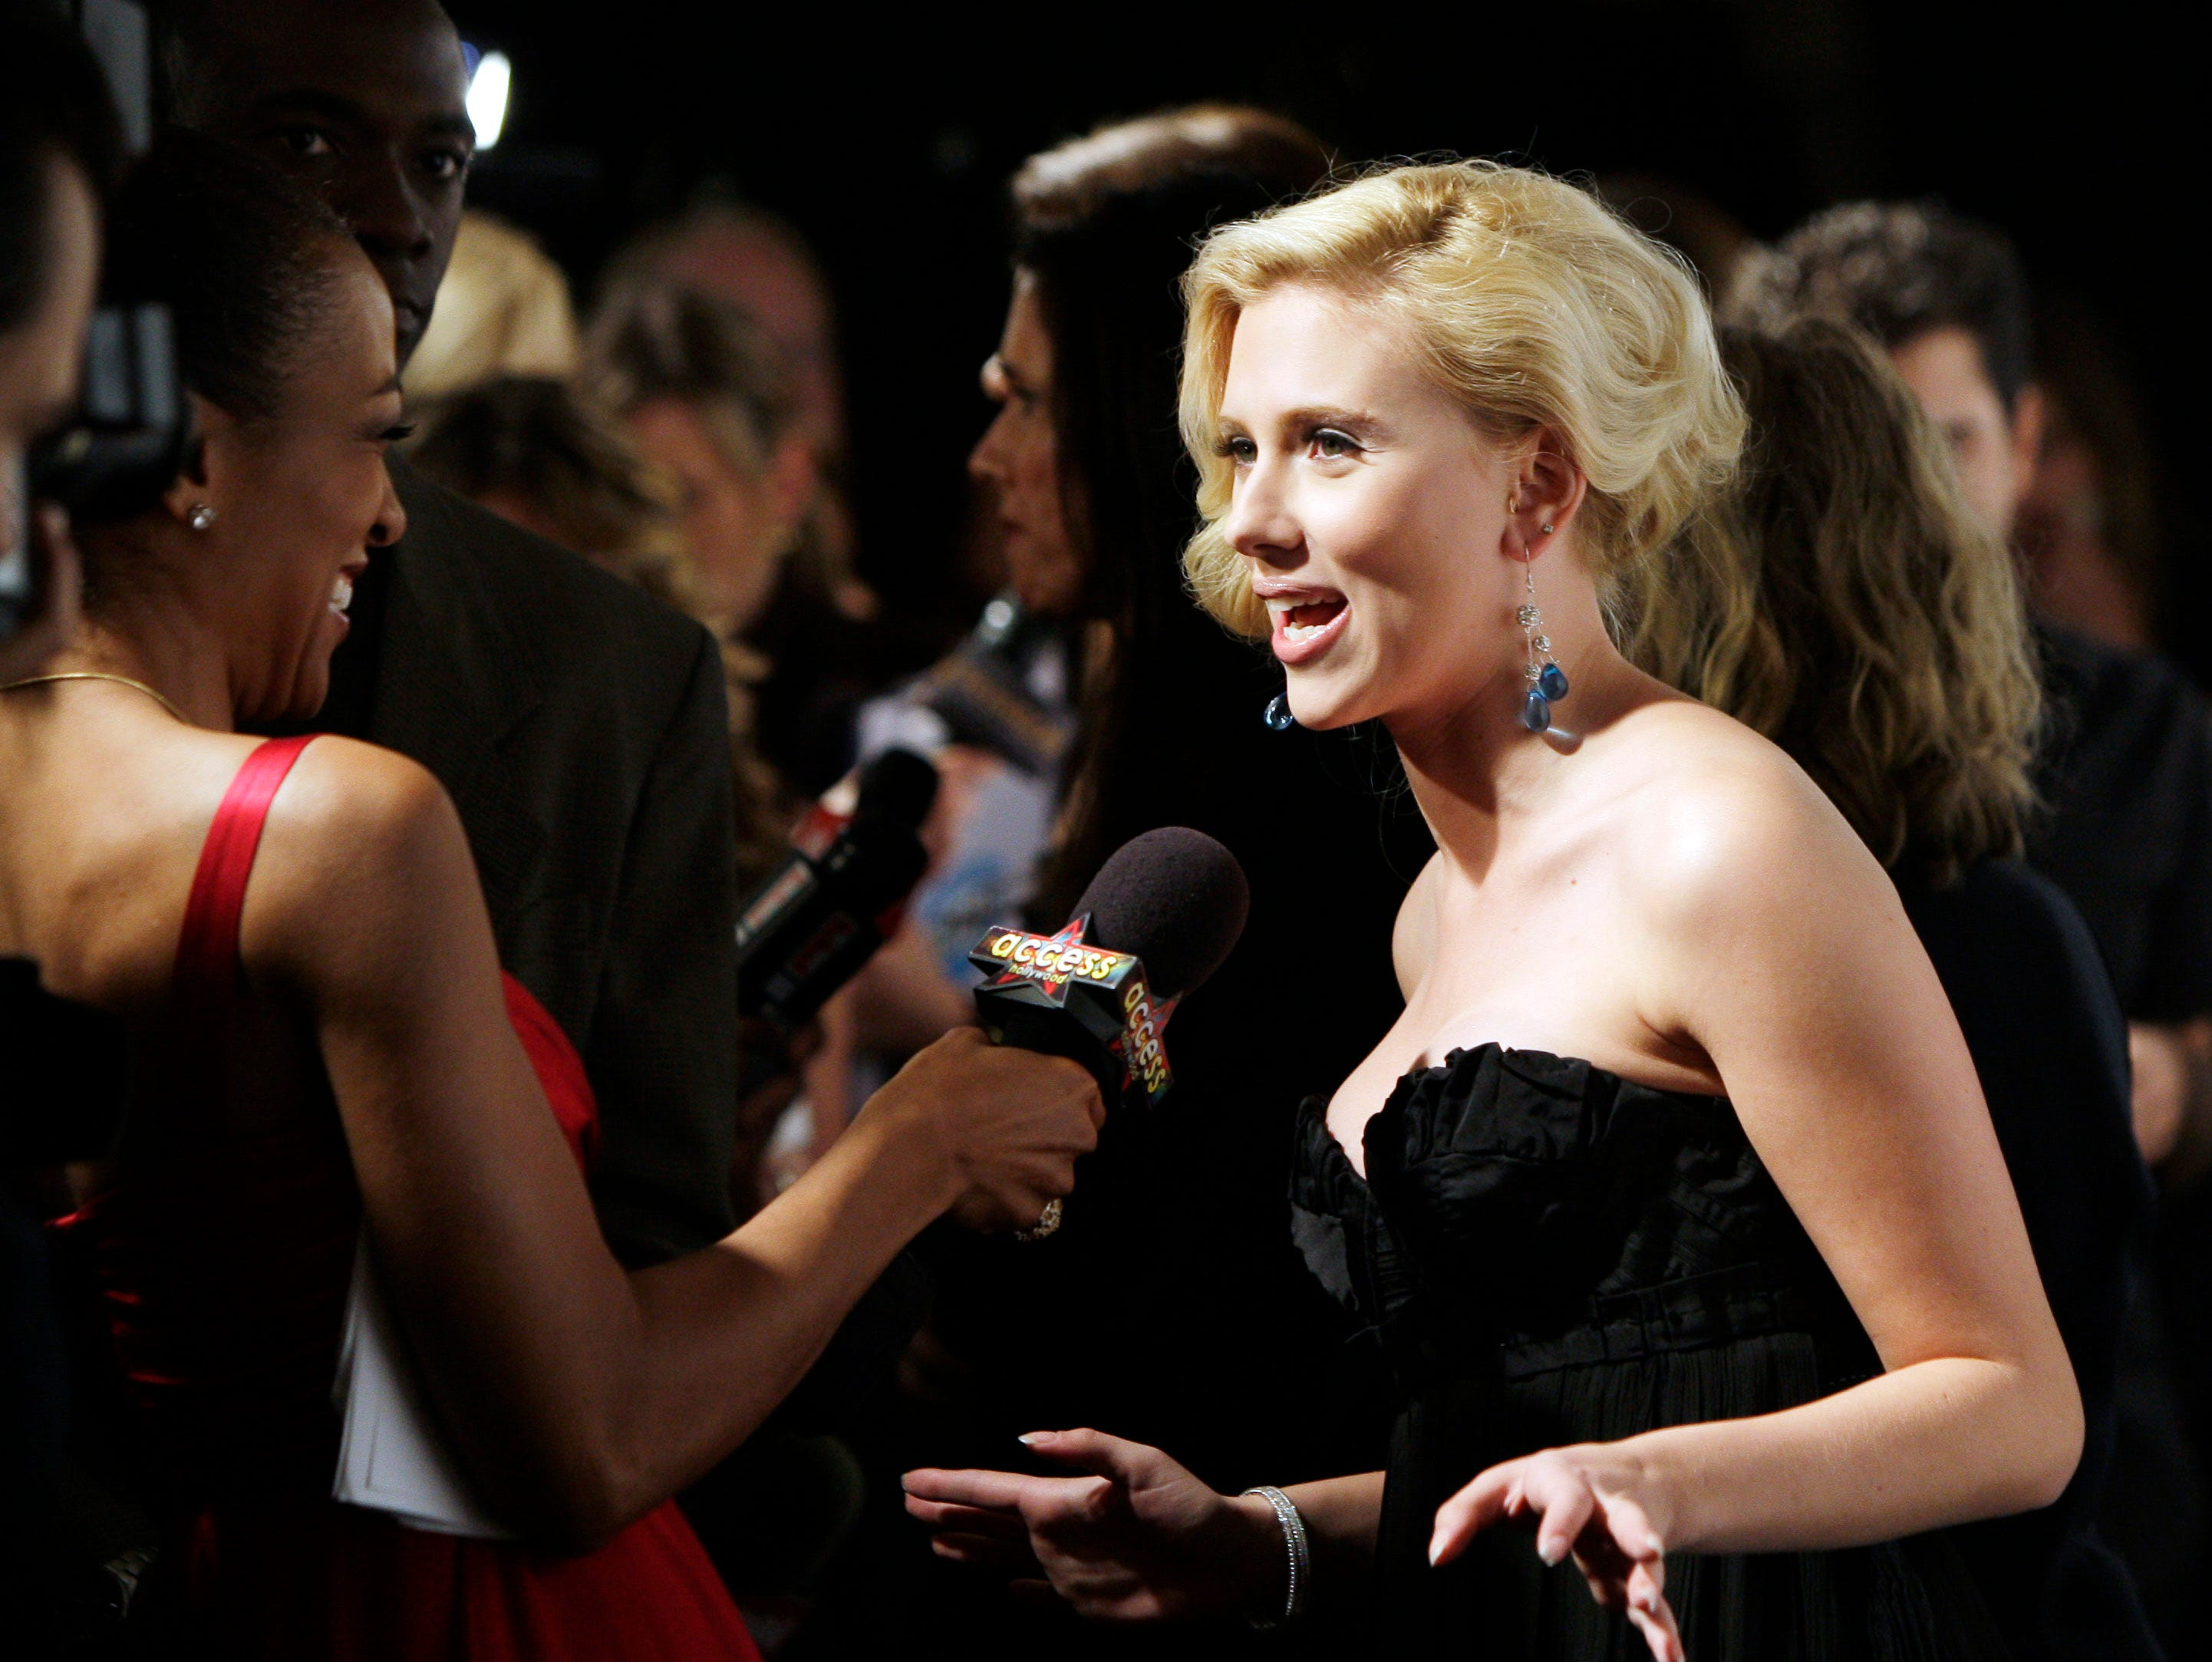 Honoree actress Scarlett Johansson conducts an interview after she arrived at Elle magazine's 14th Annual Women in Hollywood tribute in Los Angeles Monday, Oct. 15, 2007. (AP Photo/Kevork Djansezian) ORG XMIT: KSD106